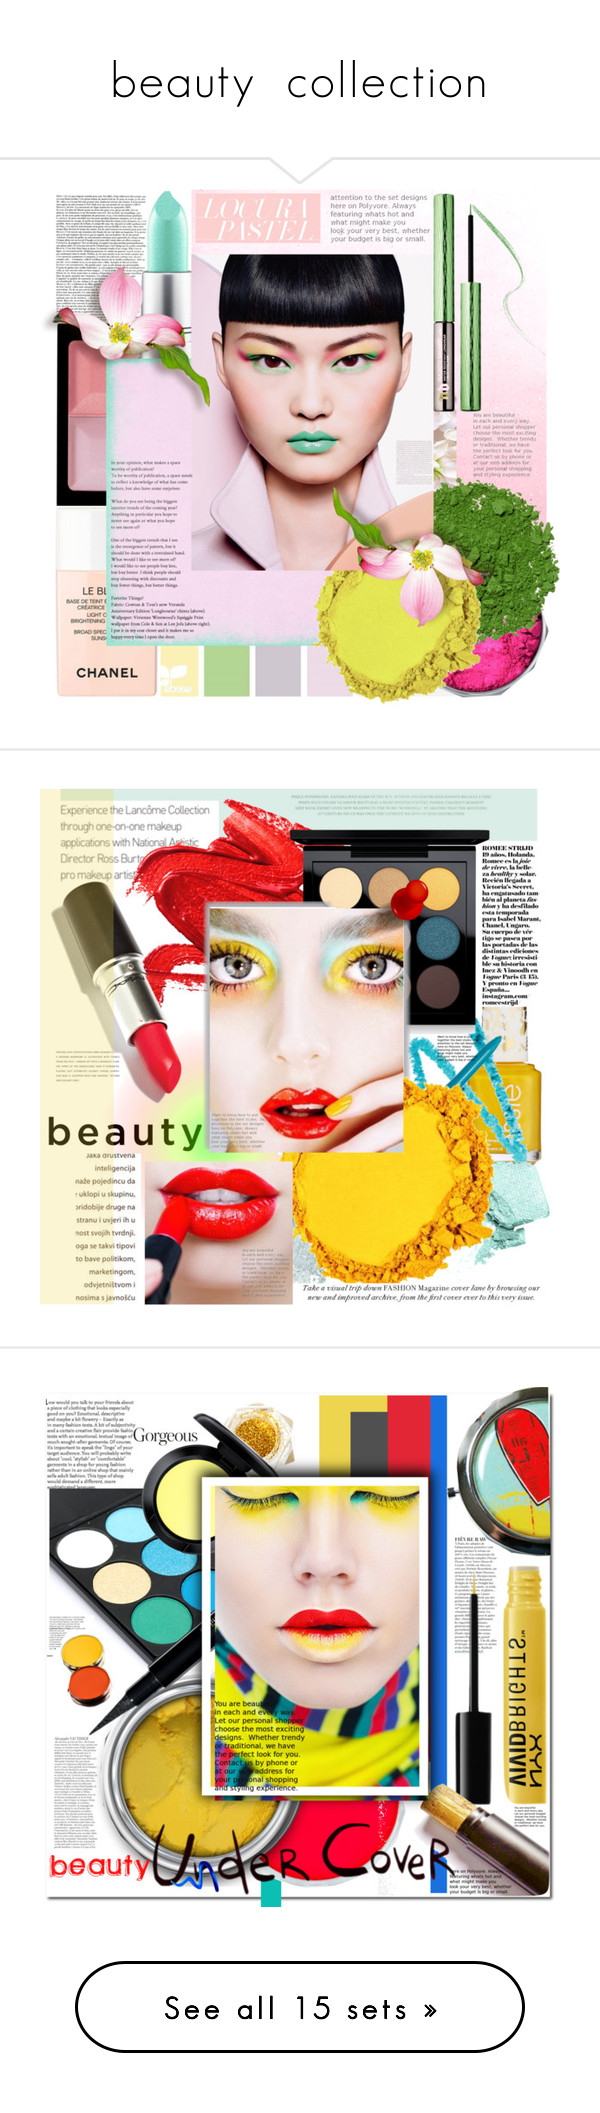 """""""beauty  collection"""" by licethfashion ❤ liked on Polyvore featuring beauty, Givenchy, MAC Cosmetics, Illamasqua, Chanel, Sephora Collection, NYX, polyvoreditorial, licethfashion and Stila"""